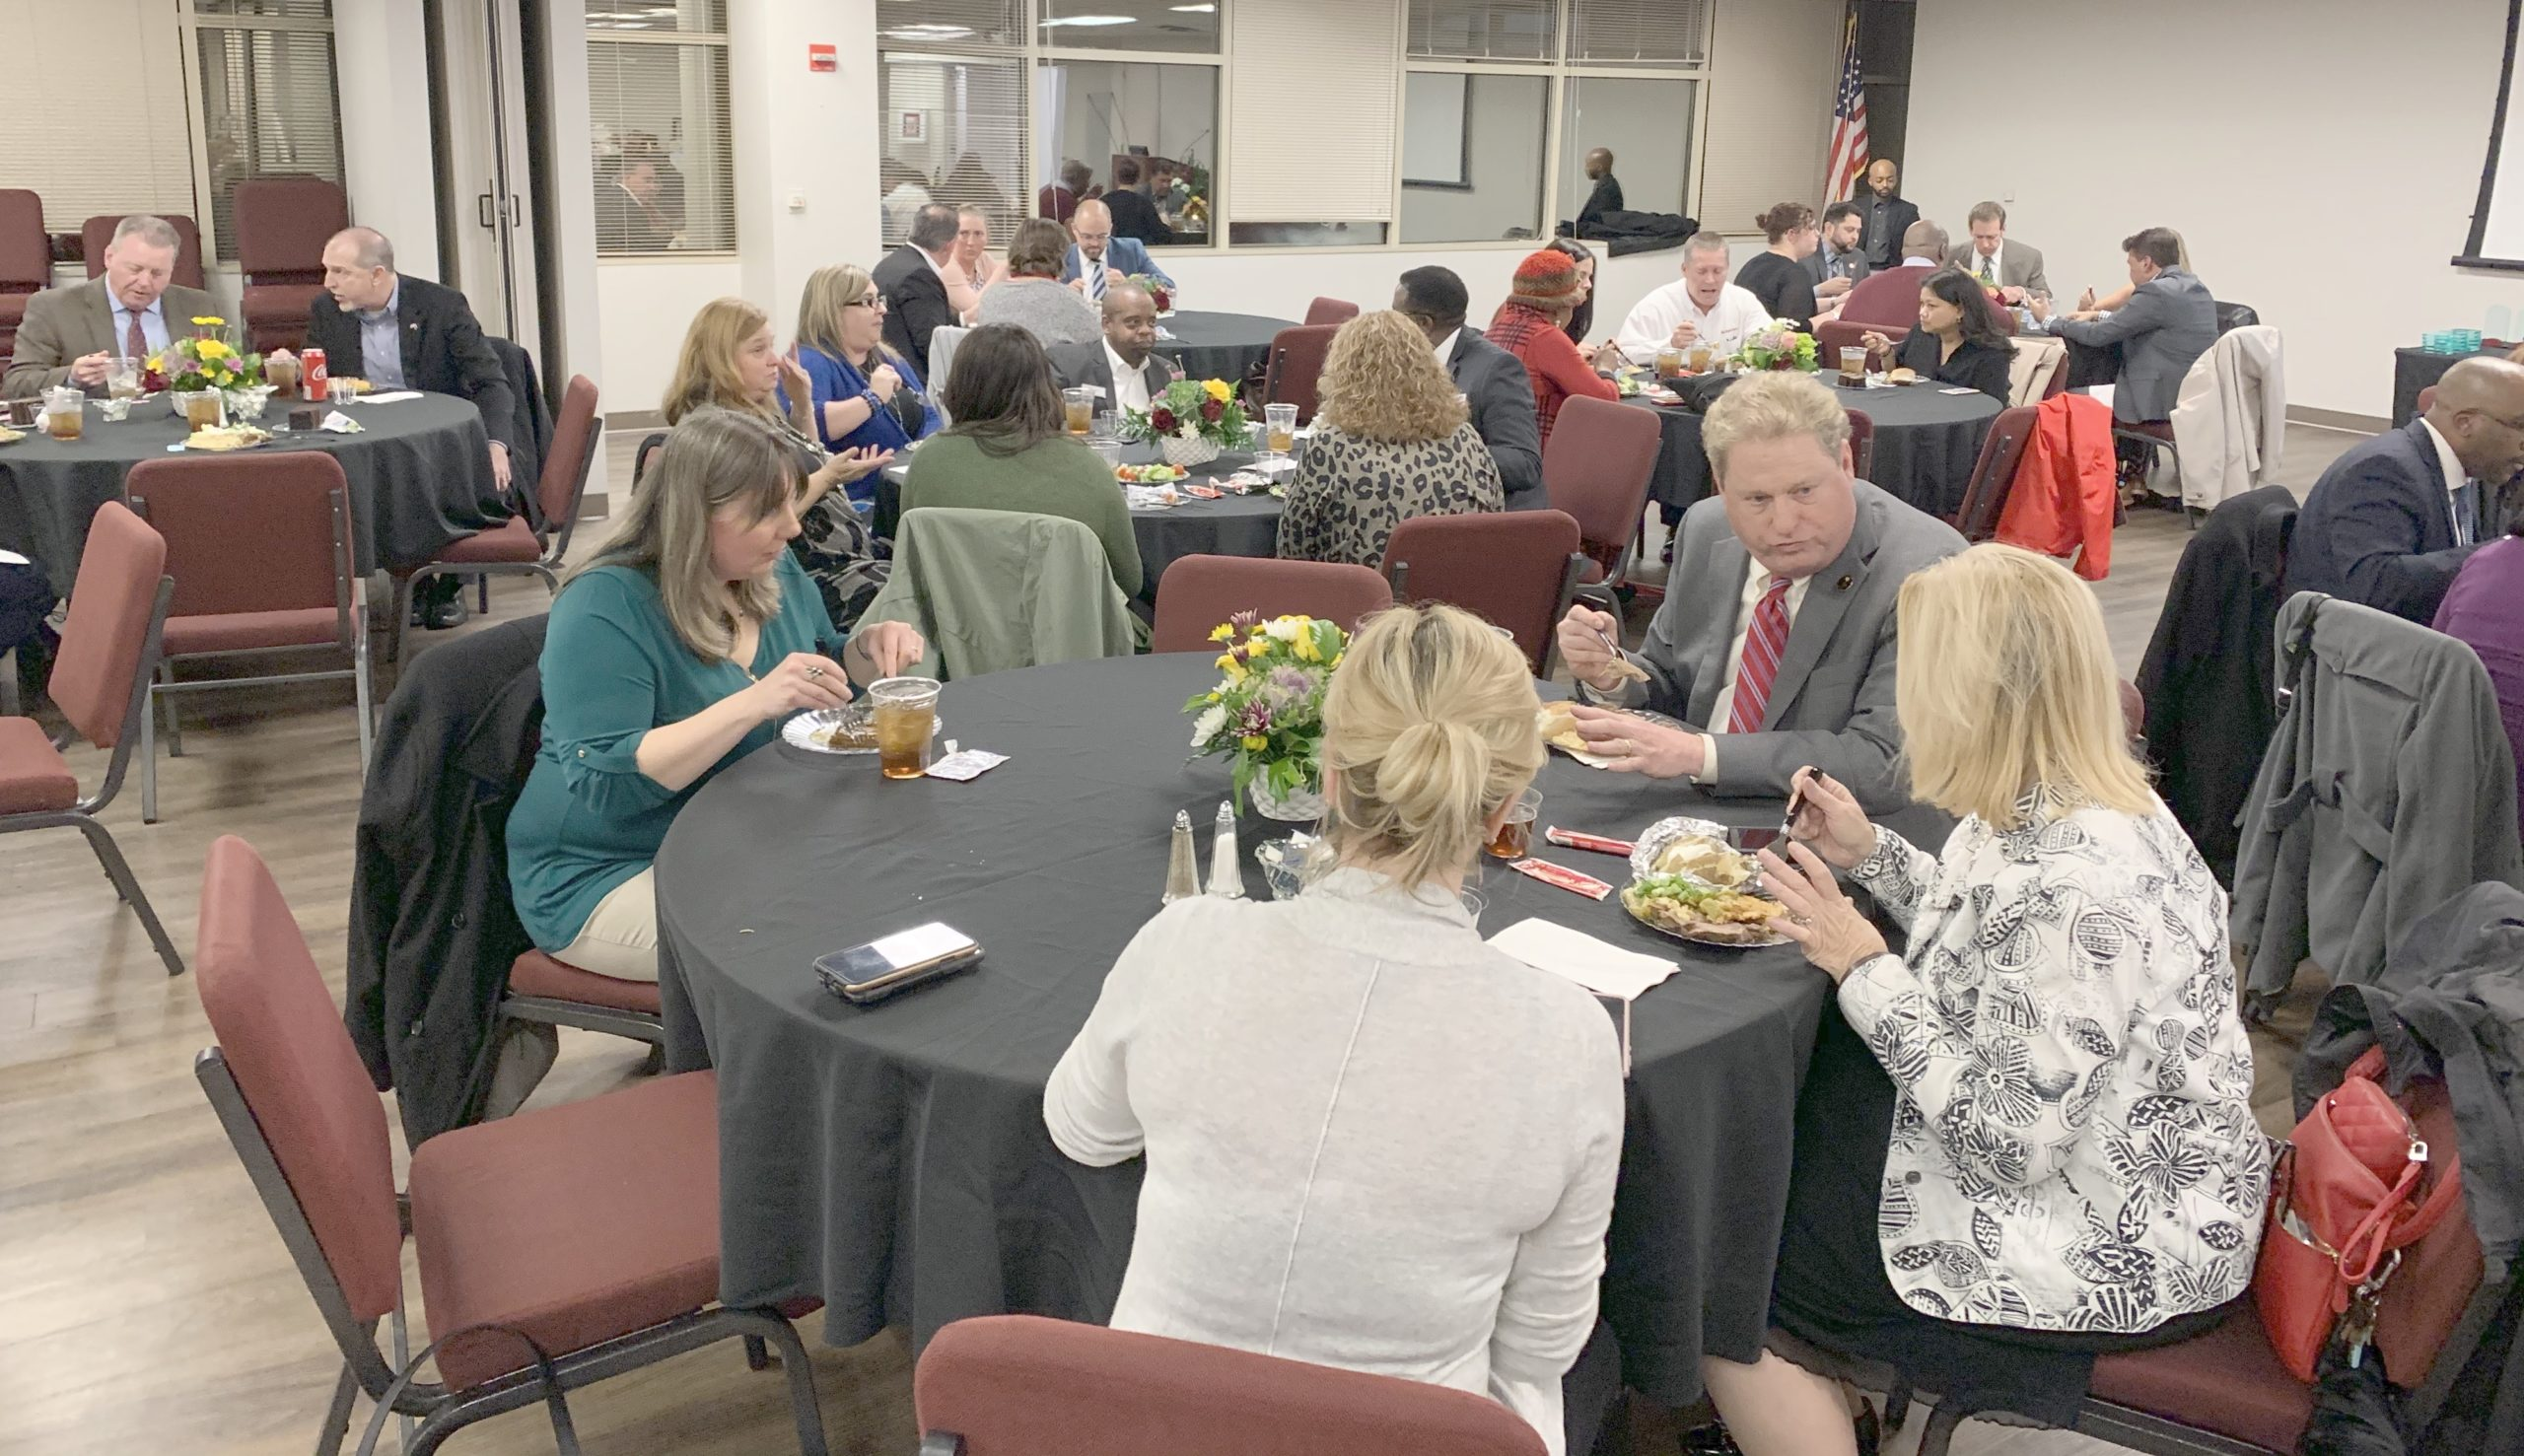 Banquet photo of members networking over dinner